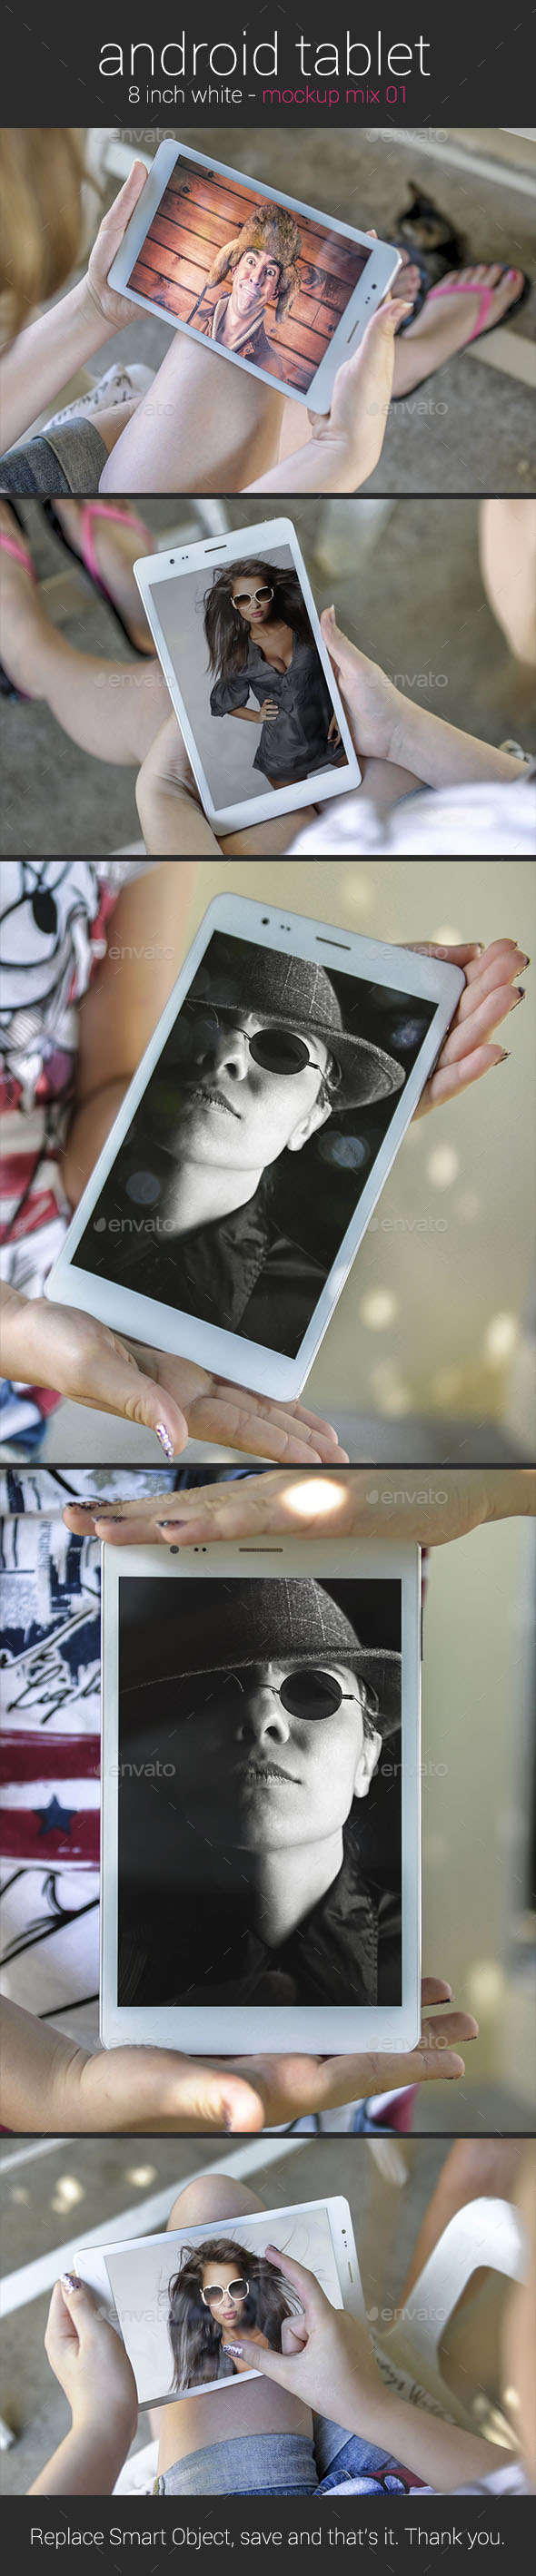 Girl Holding an Android Tablet - Mockup - Mobile Displays